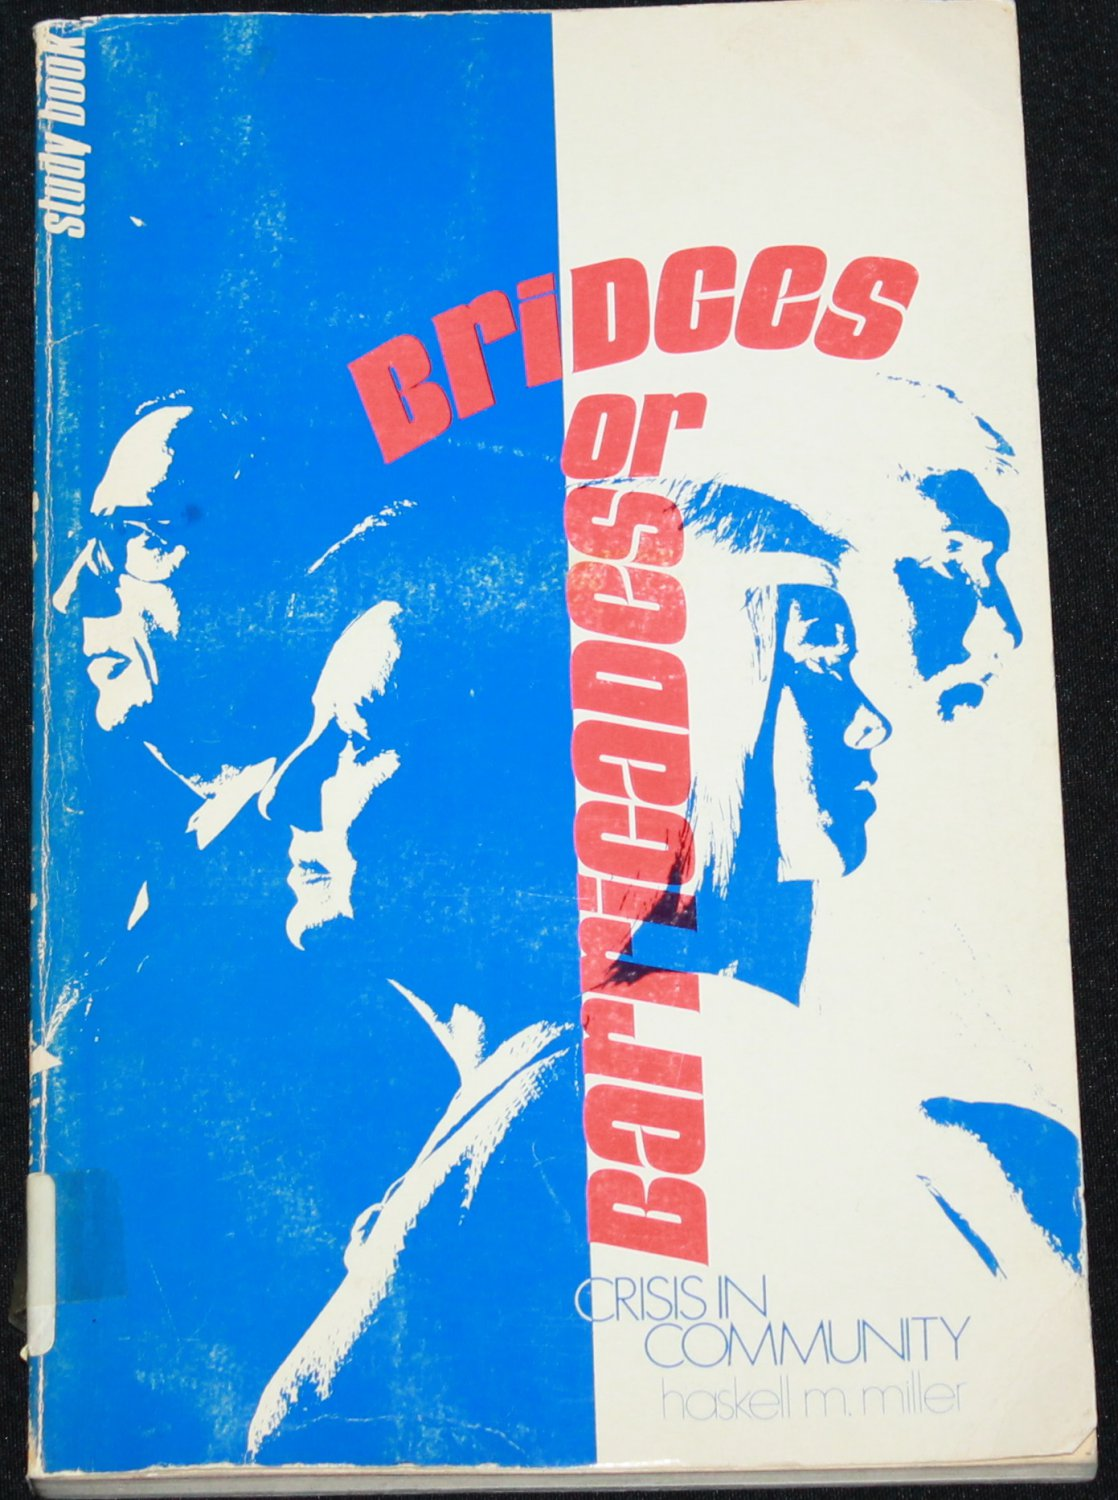 1971 Barricades or Bridges - paperback book on social issues society issues book